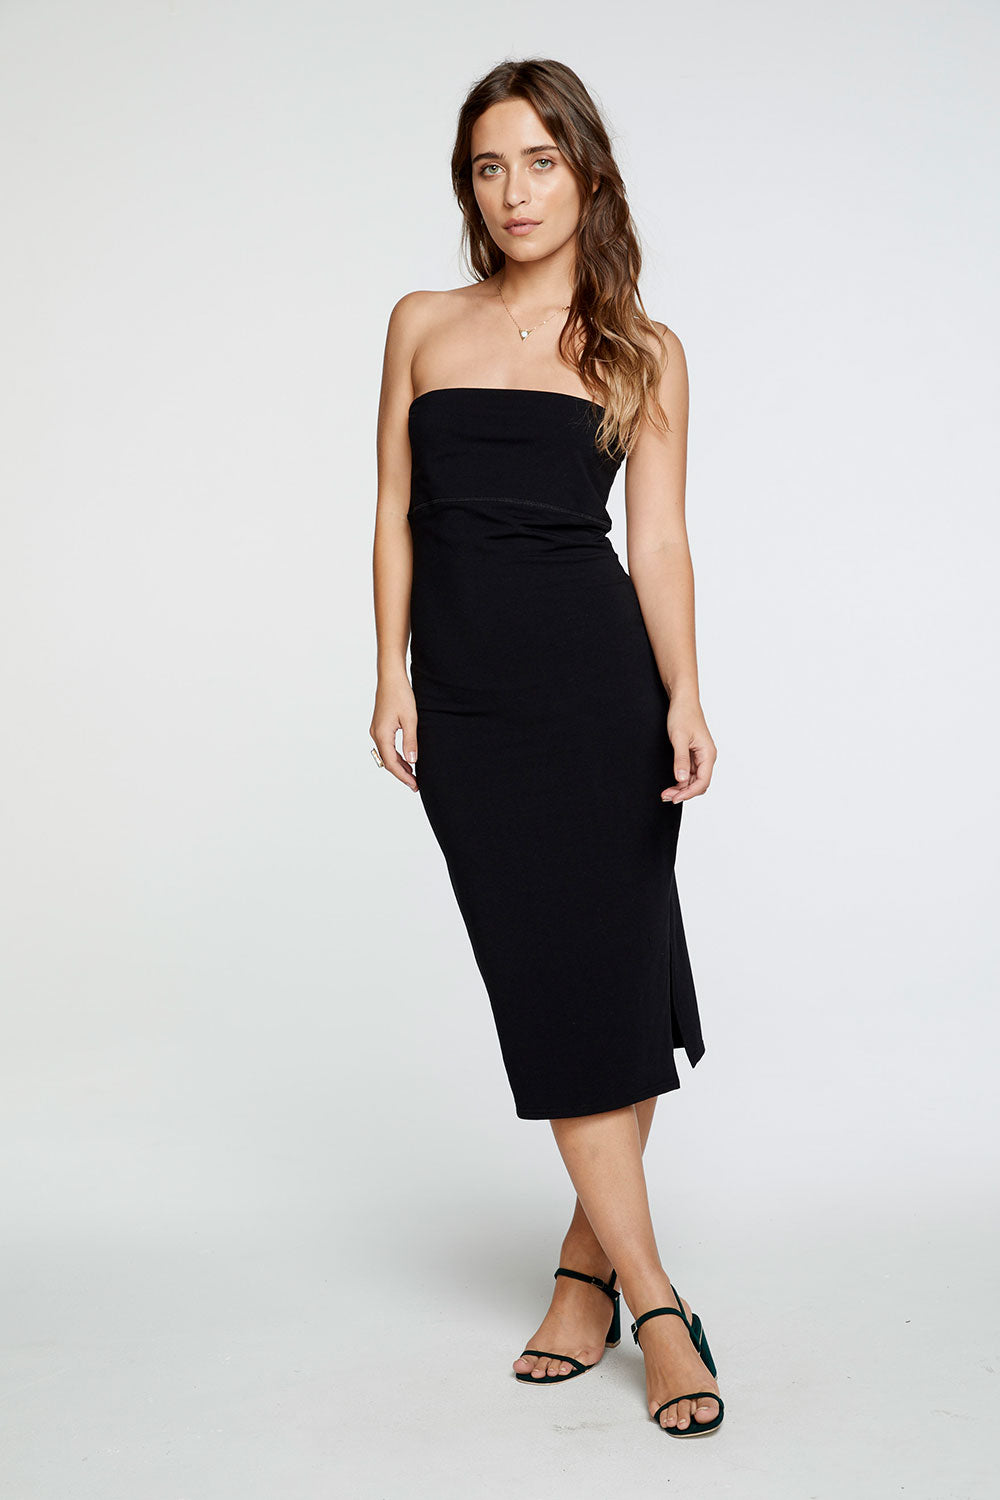 Quadrablend Strapless Slit Bodycon Midi Dress in True Black WOMENS chaserbrand4.myshopify.com